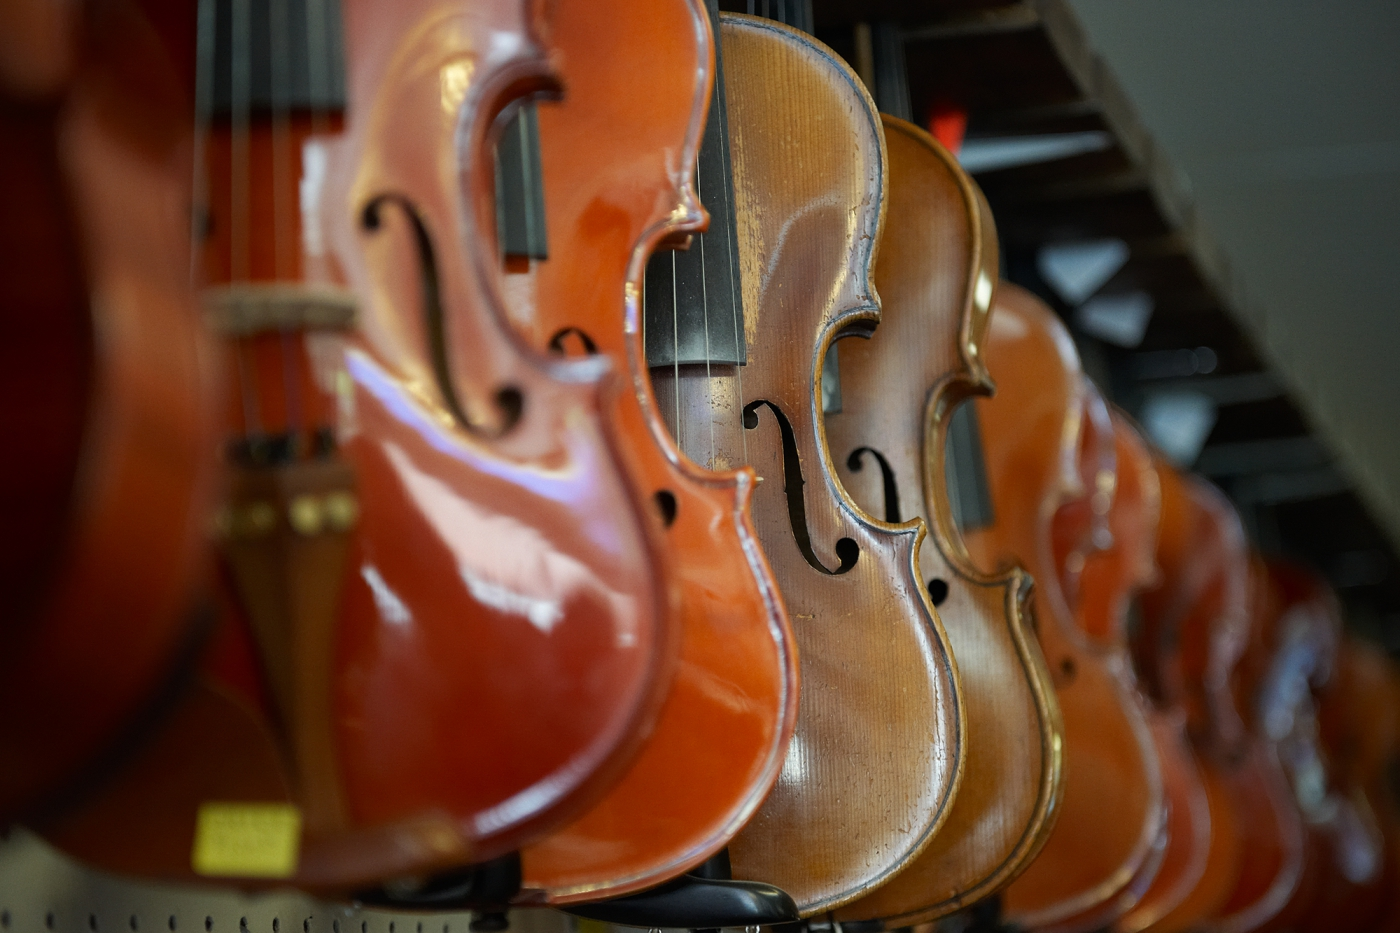 Barr's Fiddle Shop in downtown Galax. Photo: ©Cameron Davidson